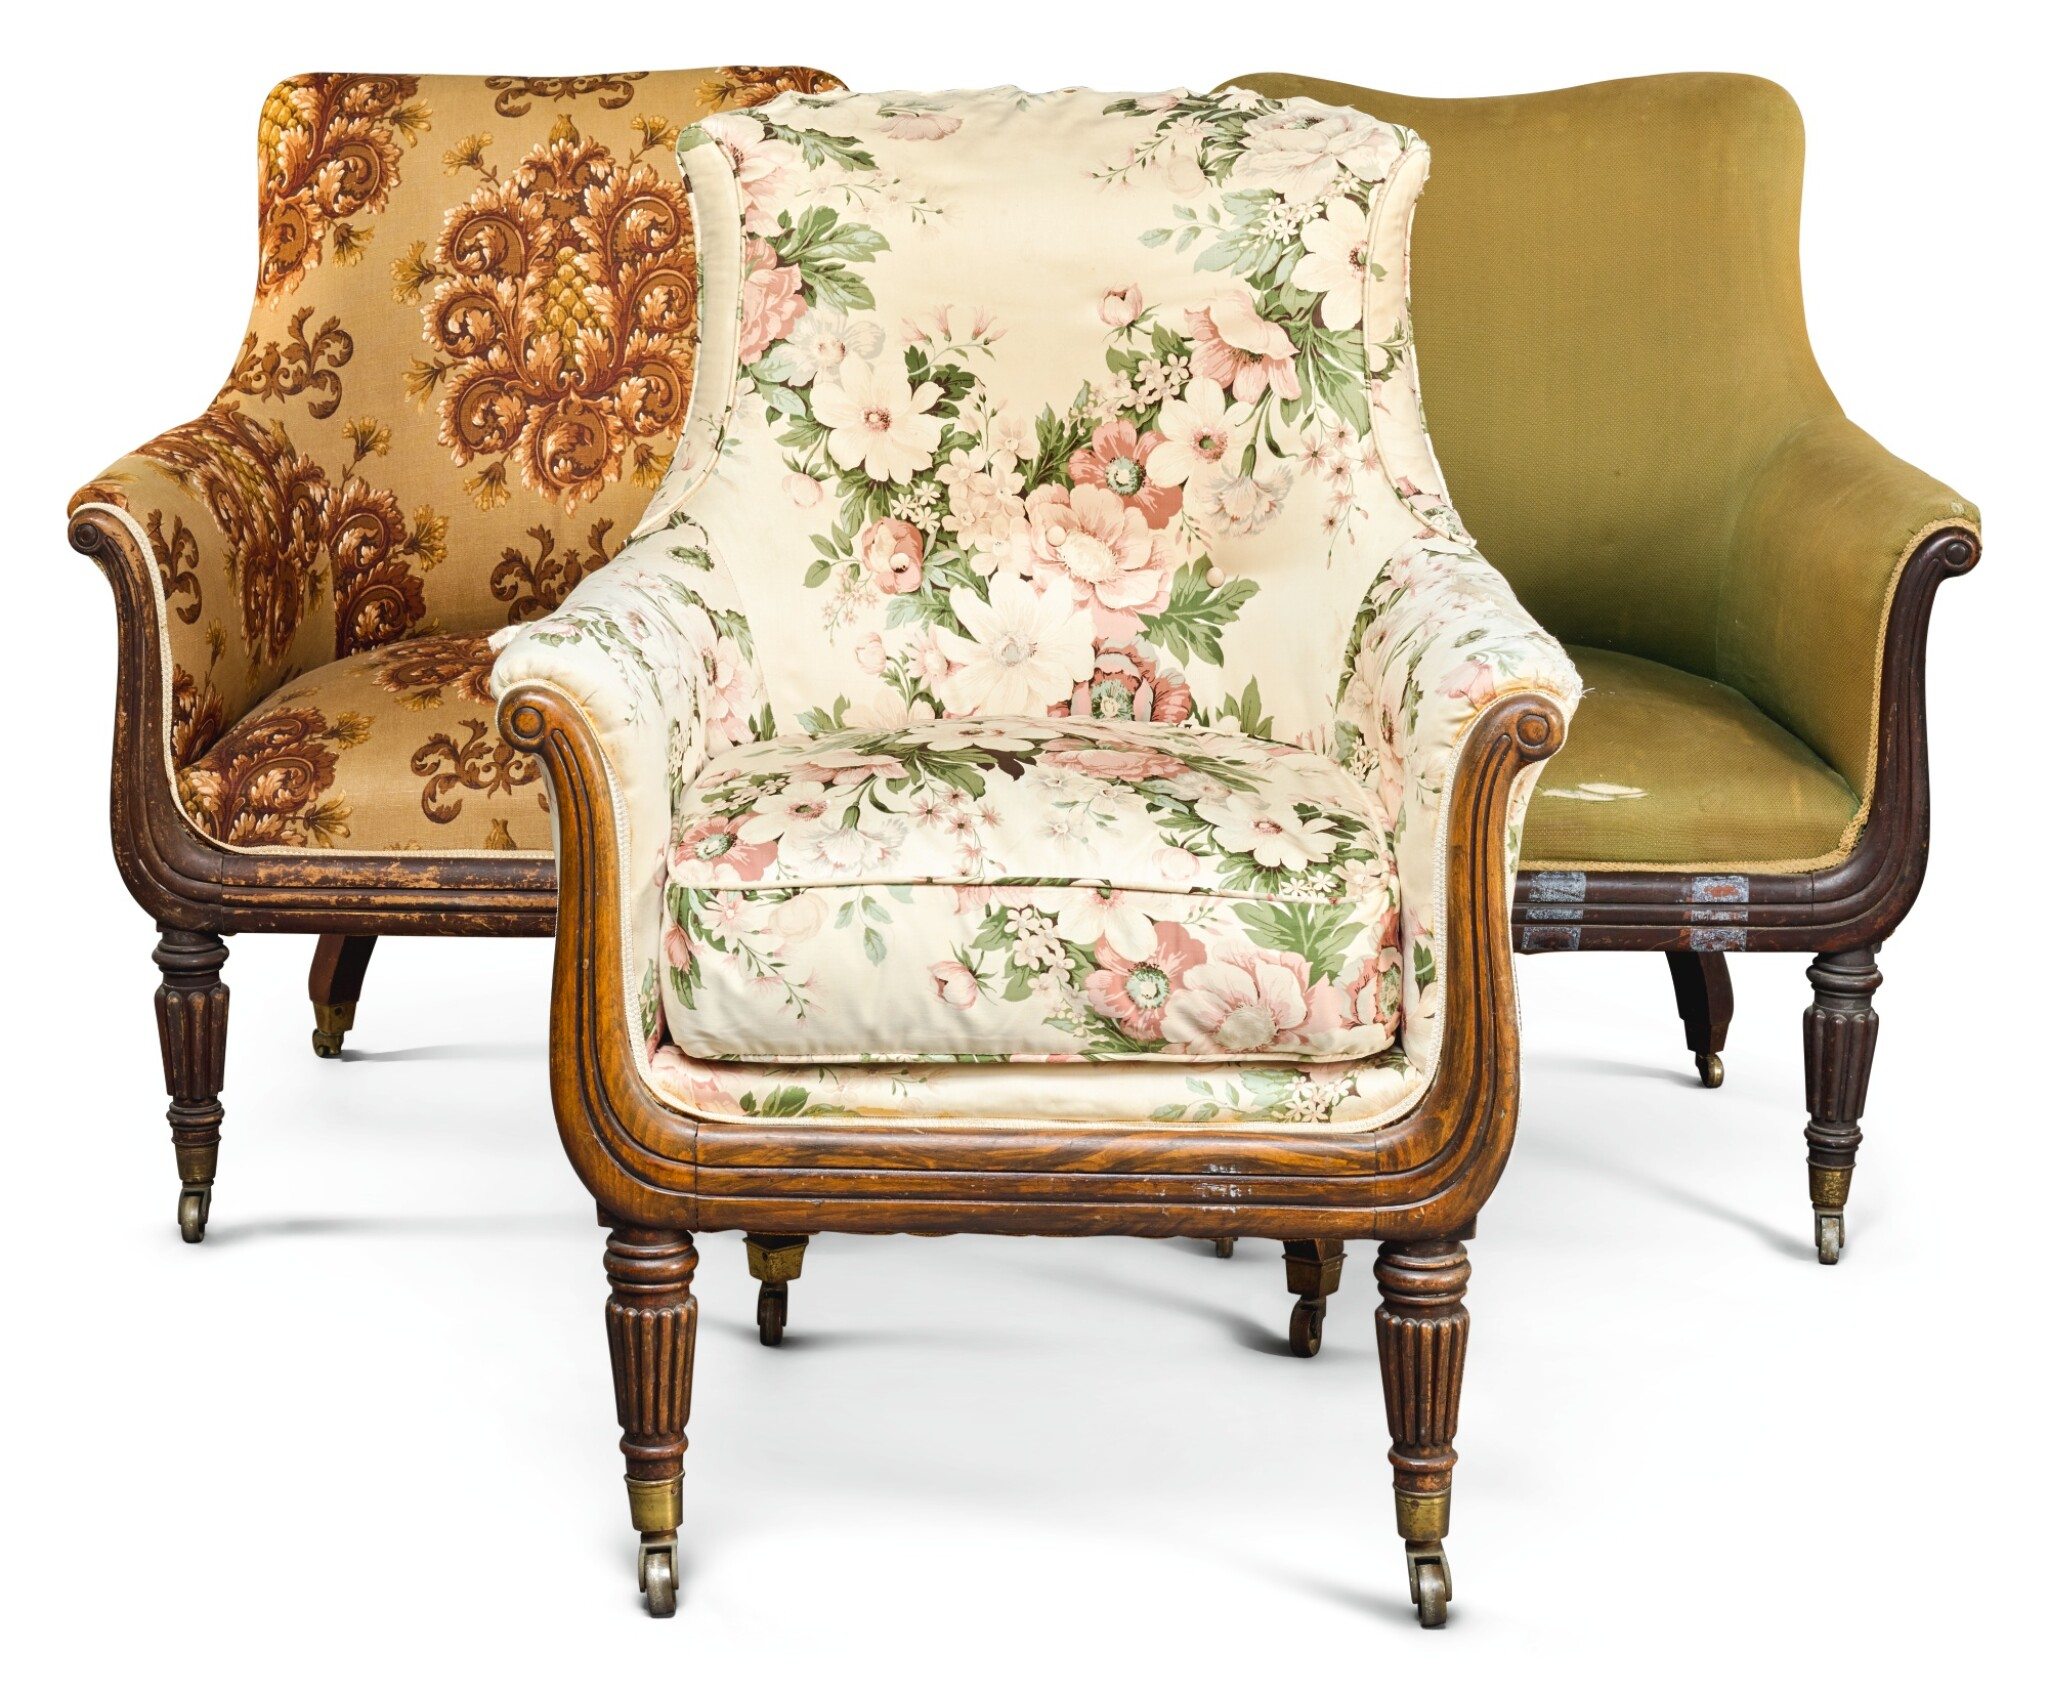 View full screen - View 1 of Lot 249. A MATCHED SET OF THREE GEORGE IV MAHOGANY AND FAUX-ROSEWOOD ARMCHAIRS, CIRCA 1825, IN THE MANNER OF GILLOWS.